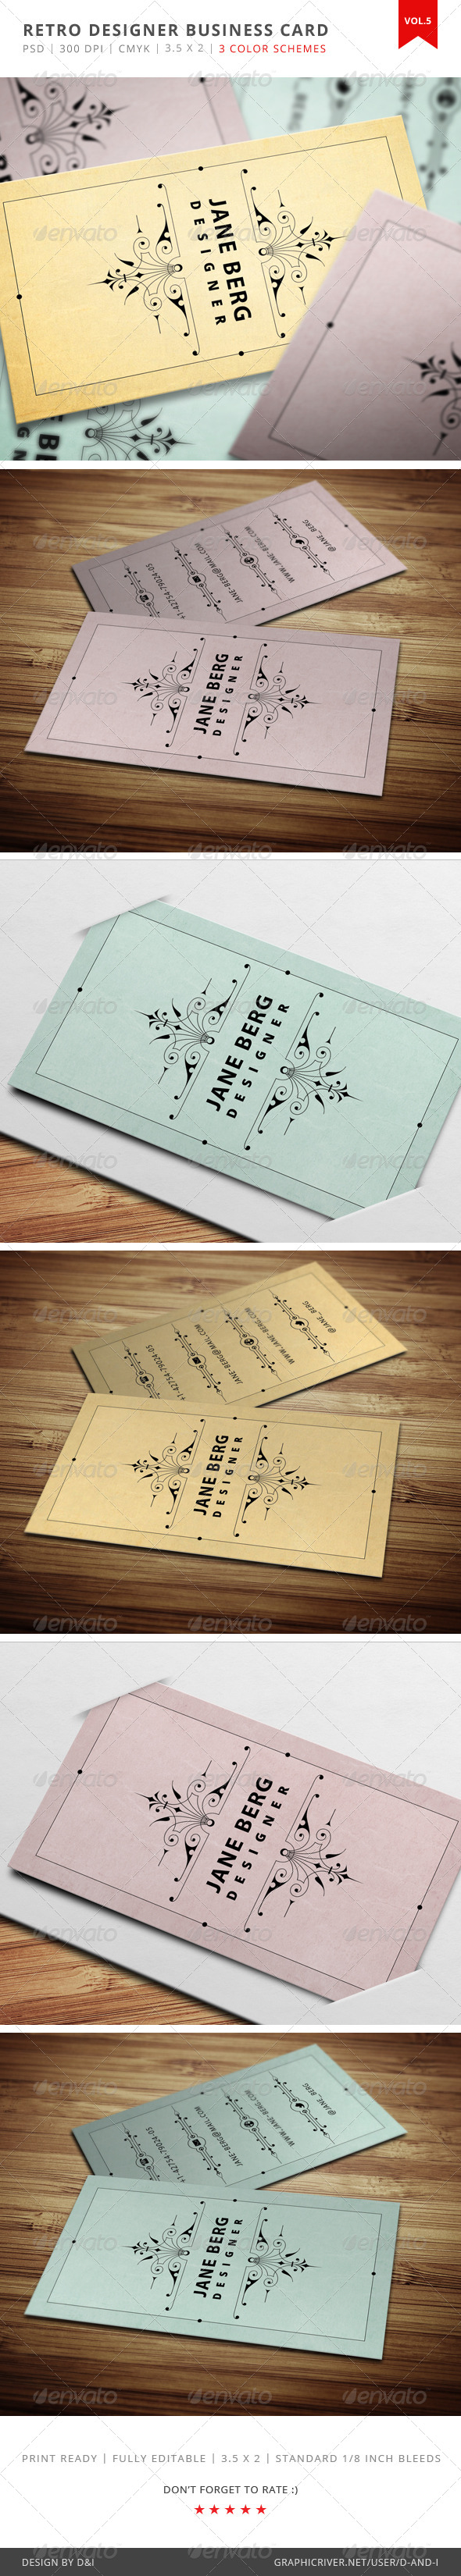 GraphicRiver Retro Designer Business Card Vol.5 4047284